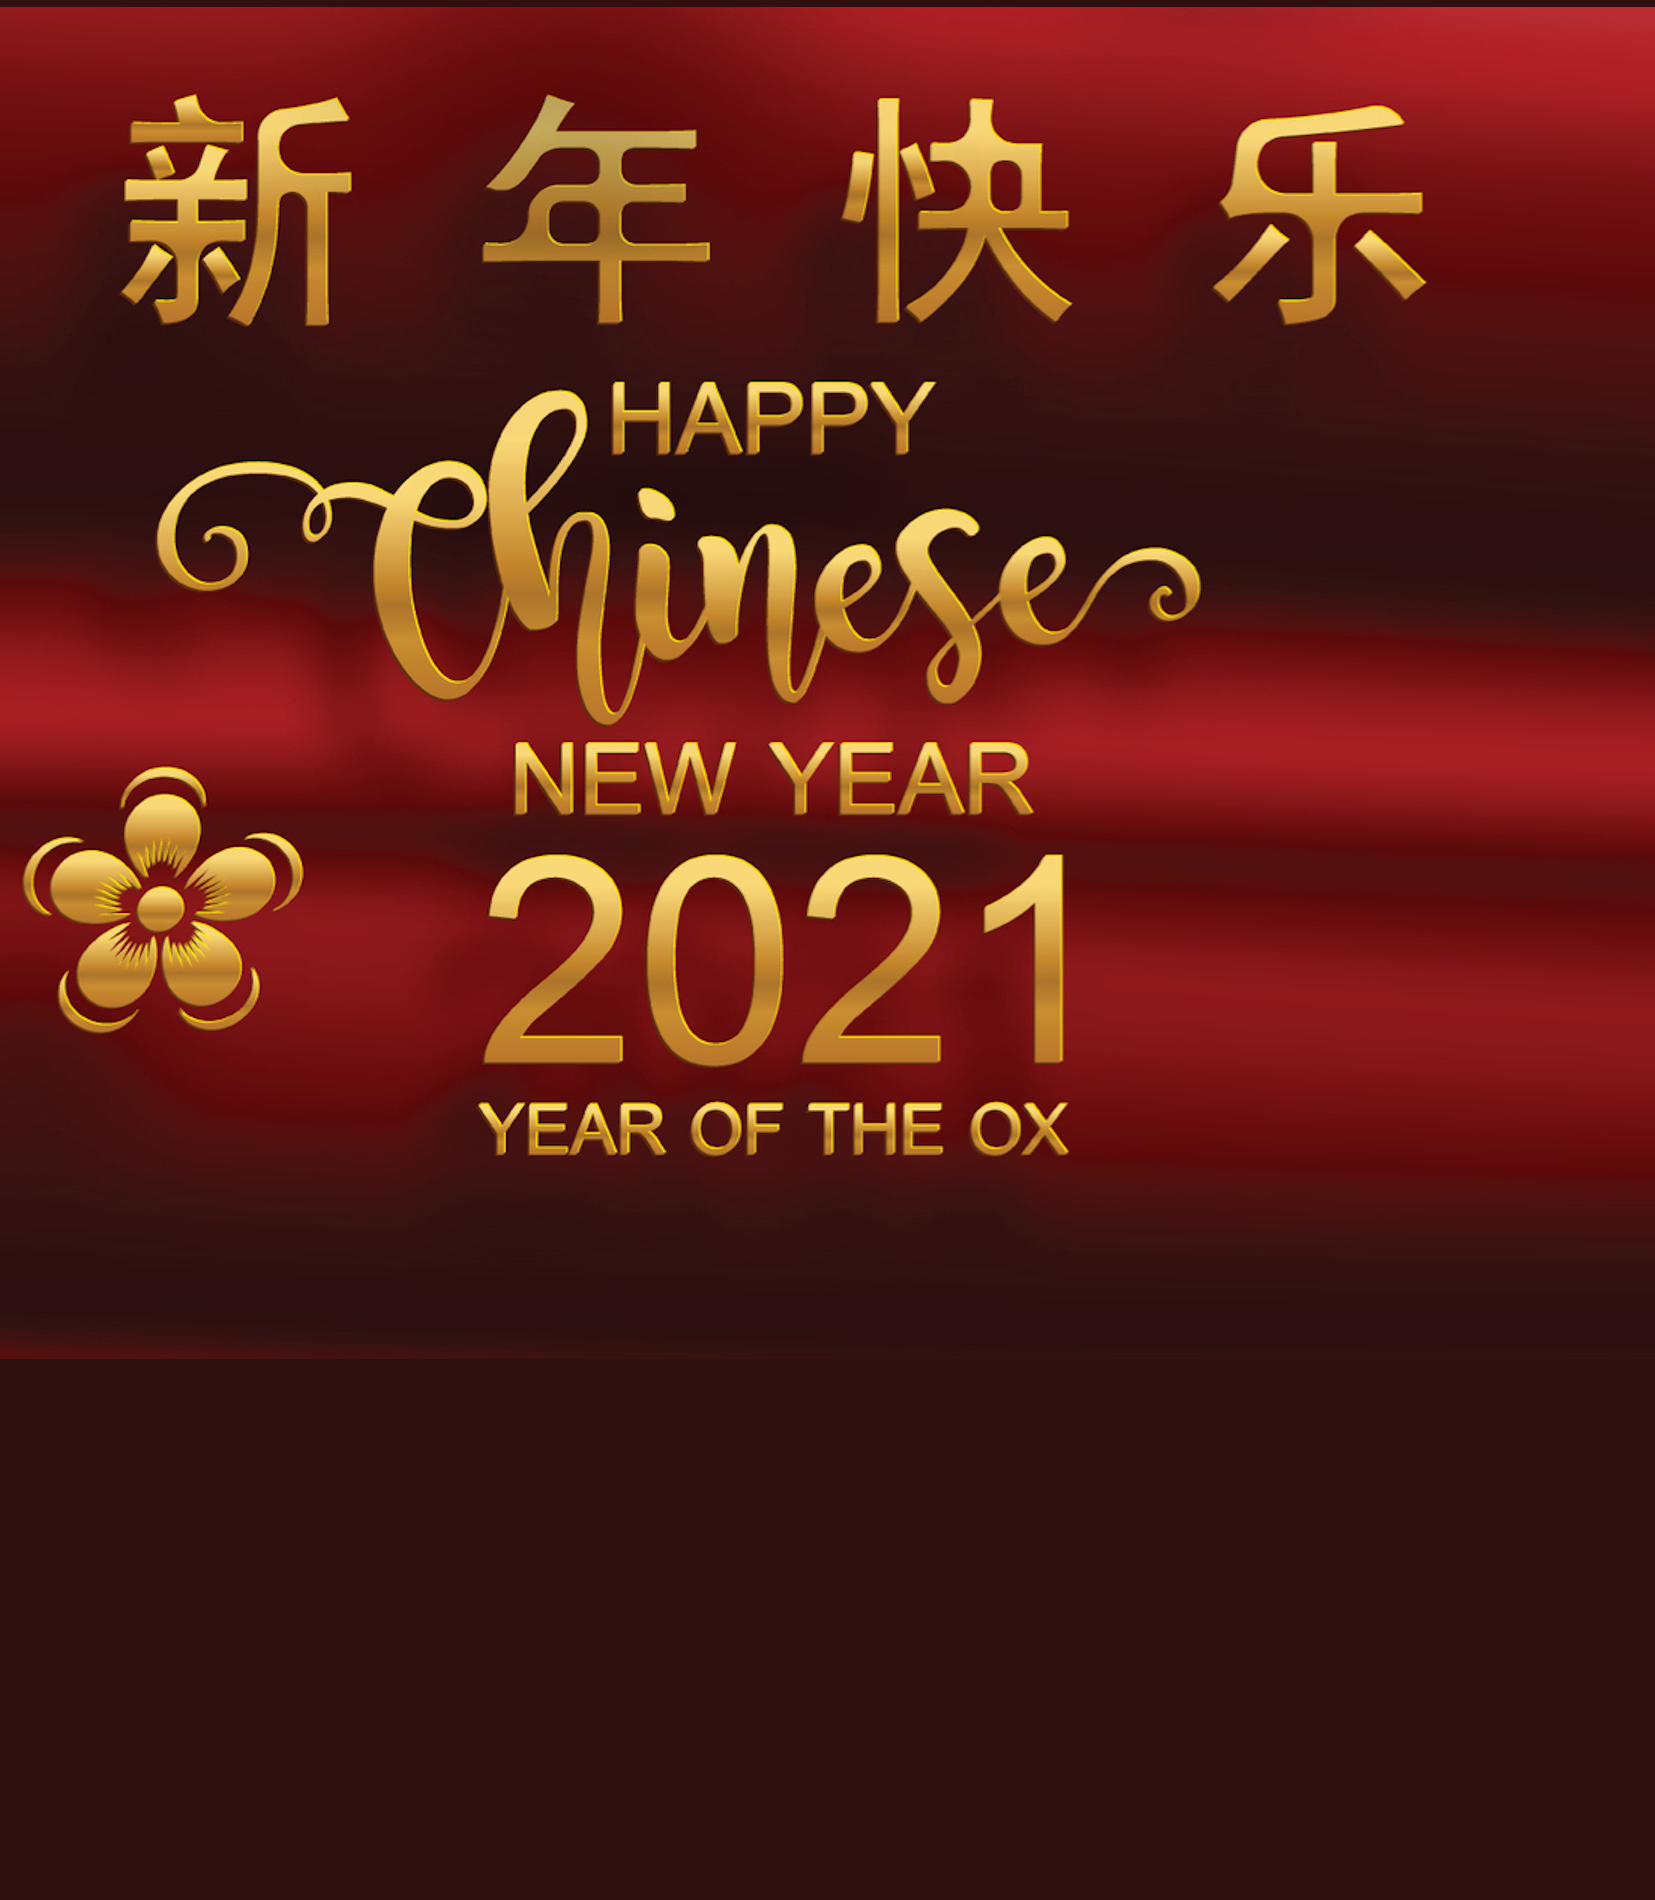 2021 Lunar New Year Ceremony